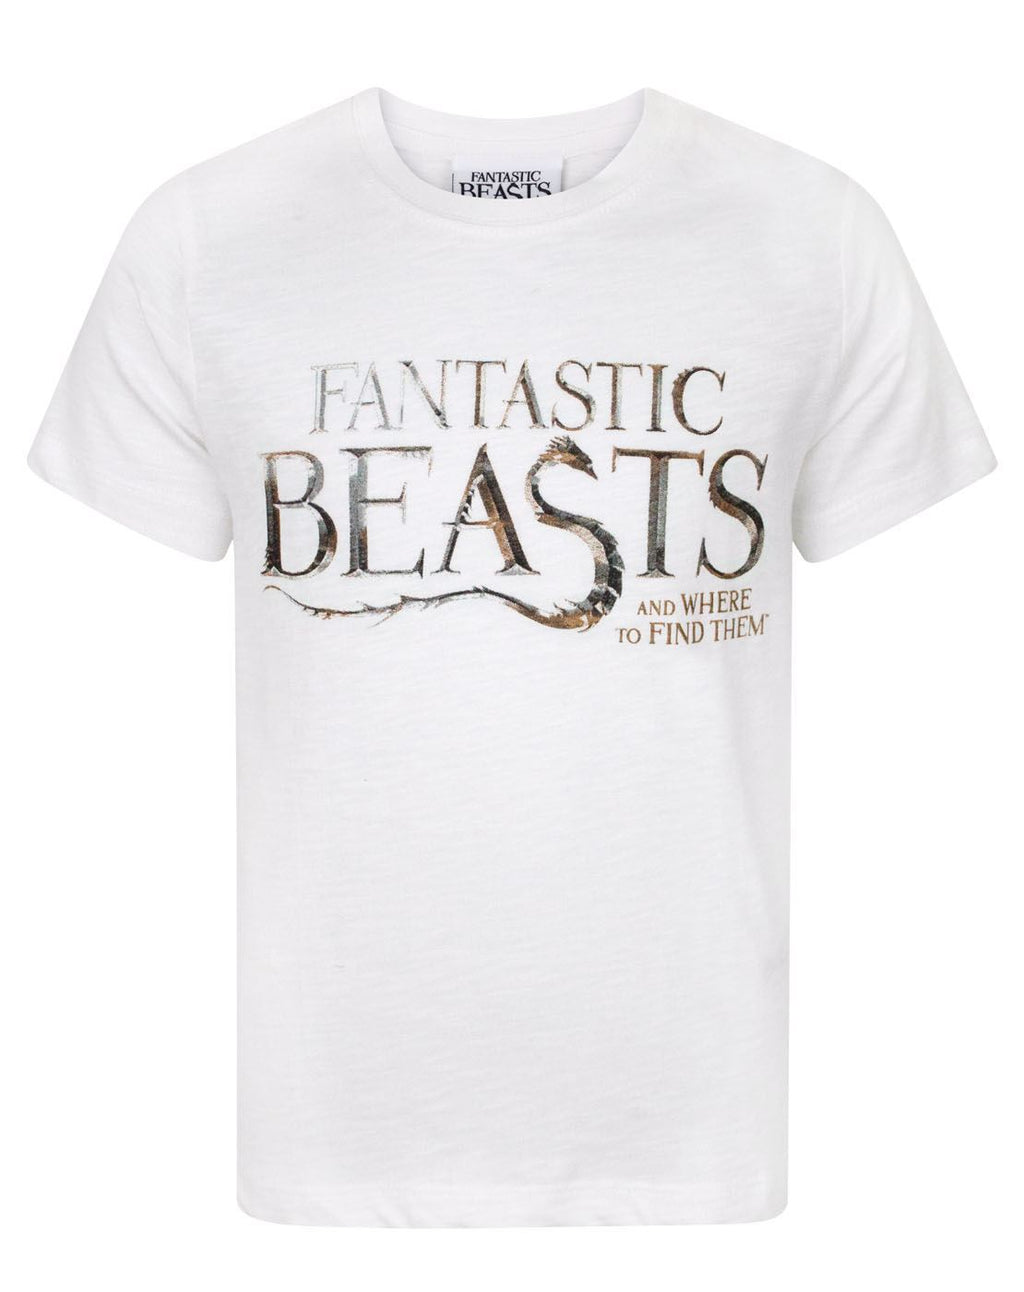 Fantastic Beasts And Where To Find Them Logo Boy's T-Shirt